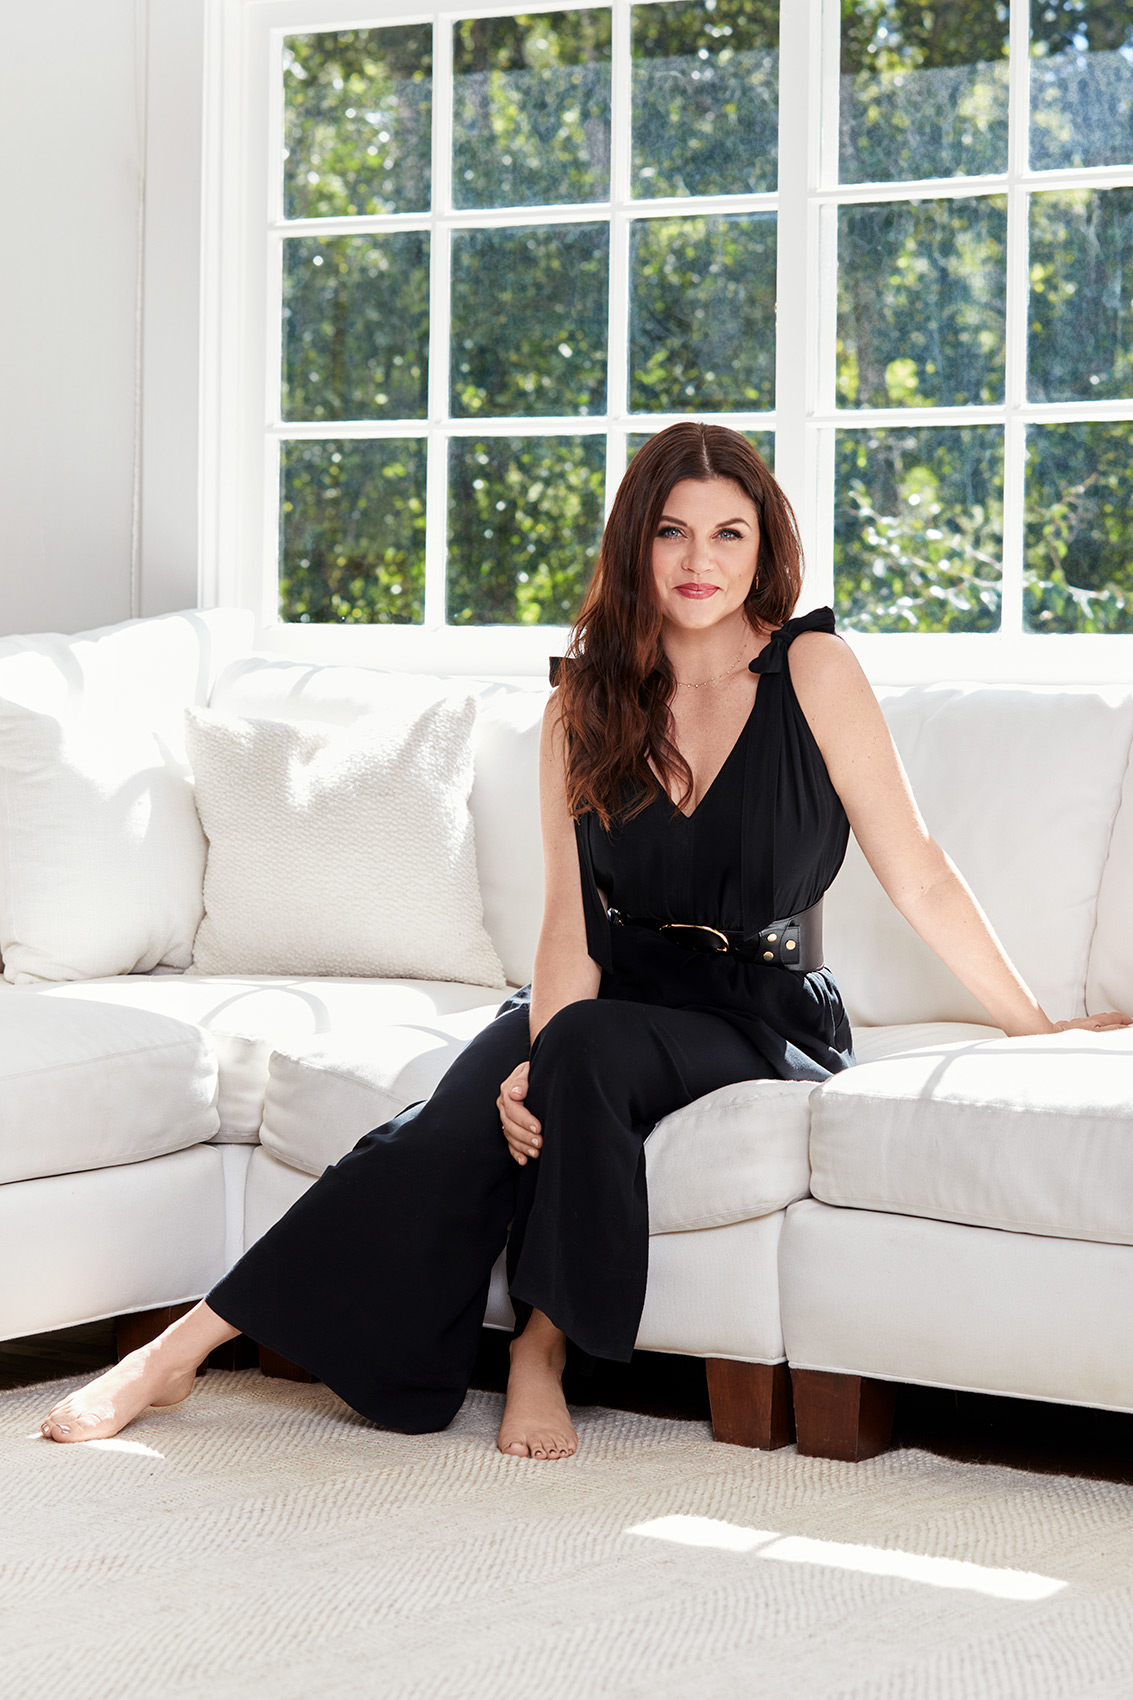 Kimberly_Genevieve_Tiffani_Thiessen_05